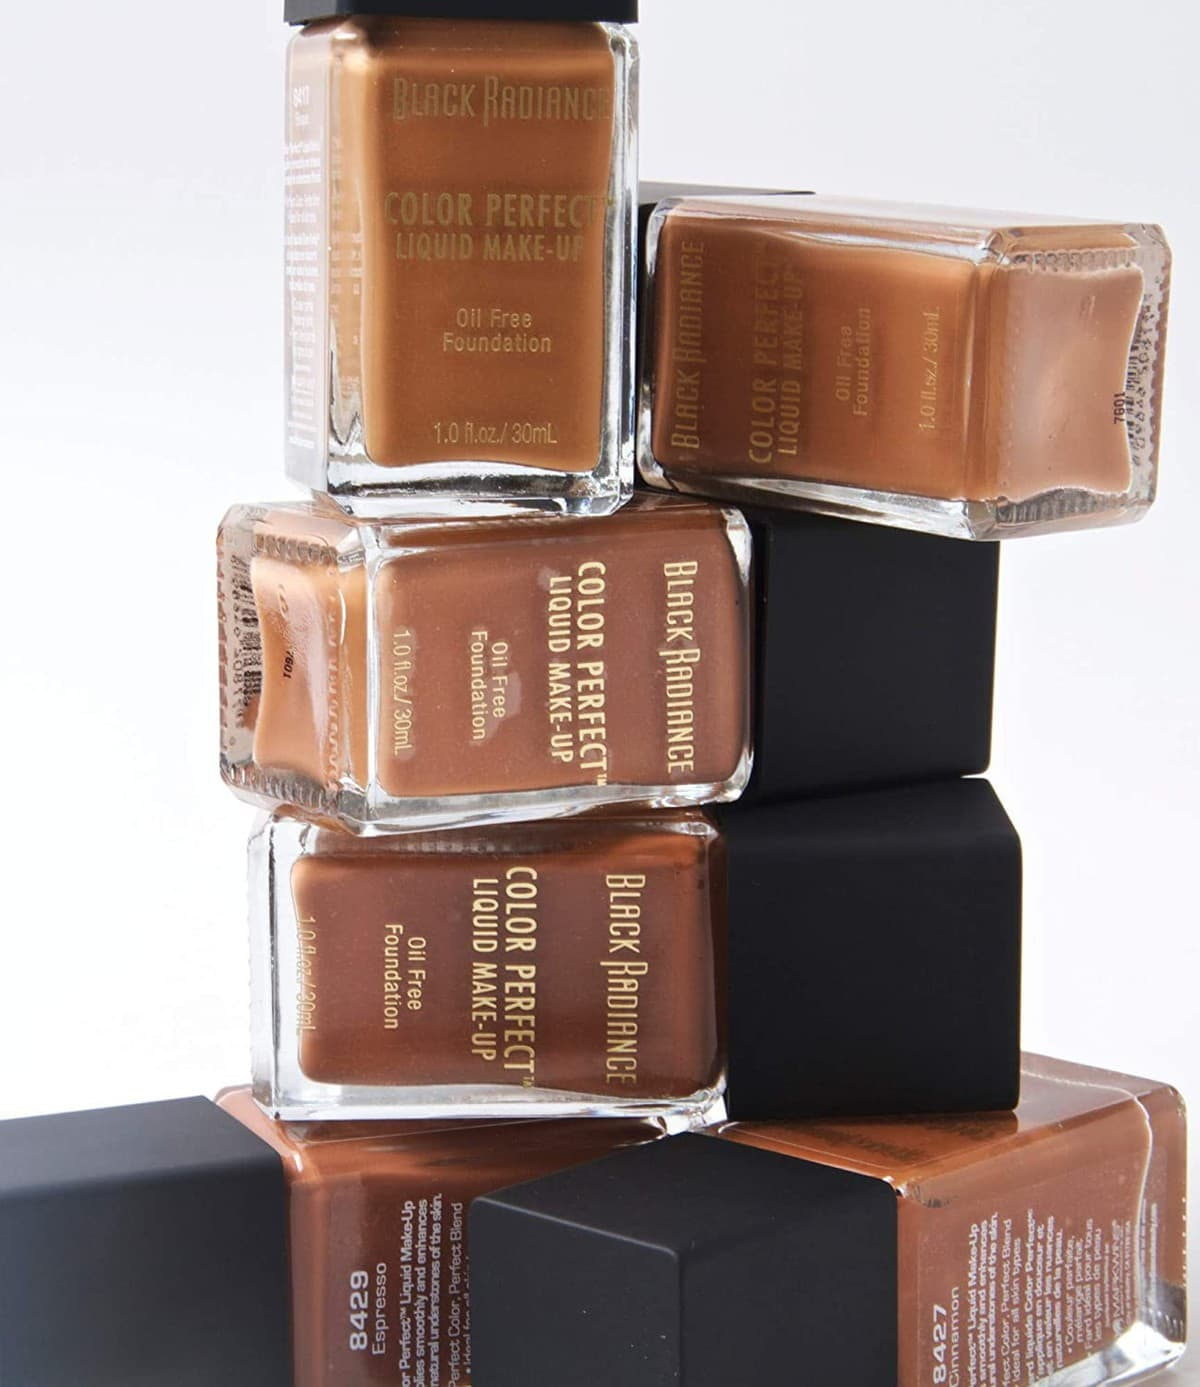 Black Radiance Color Perfect Oil Free Foundation